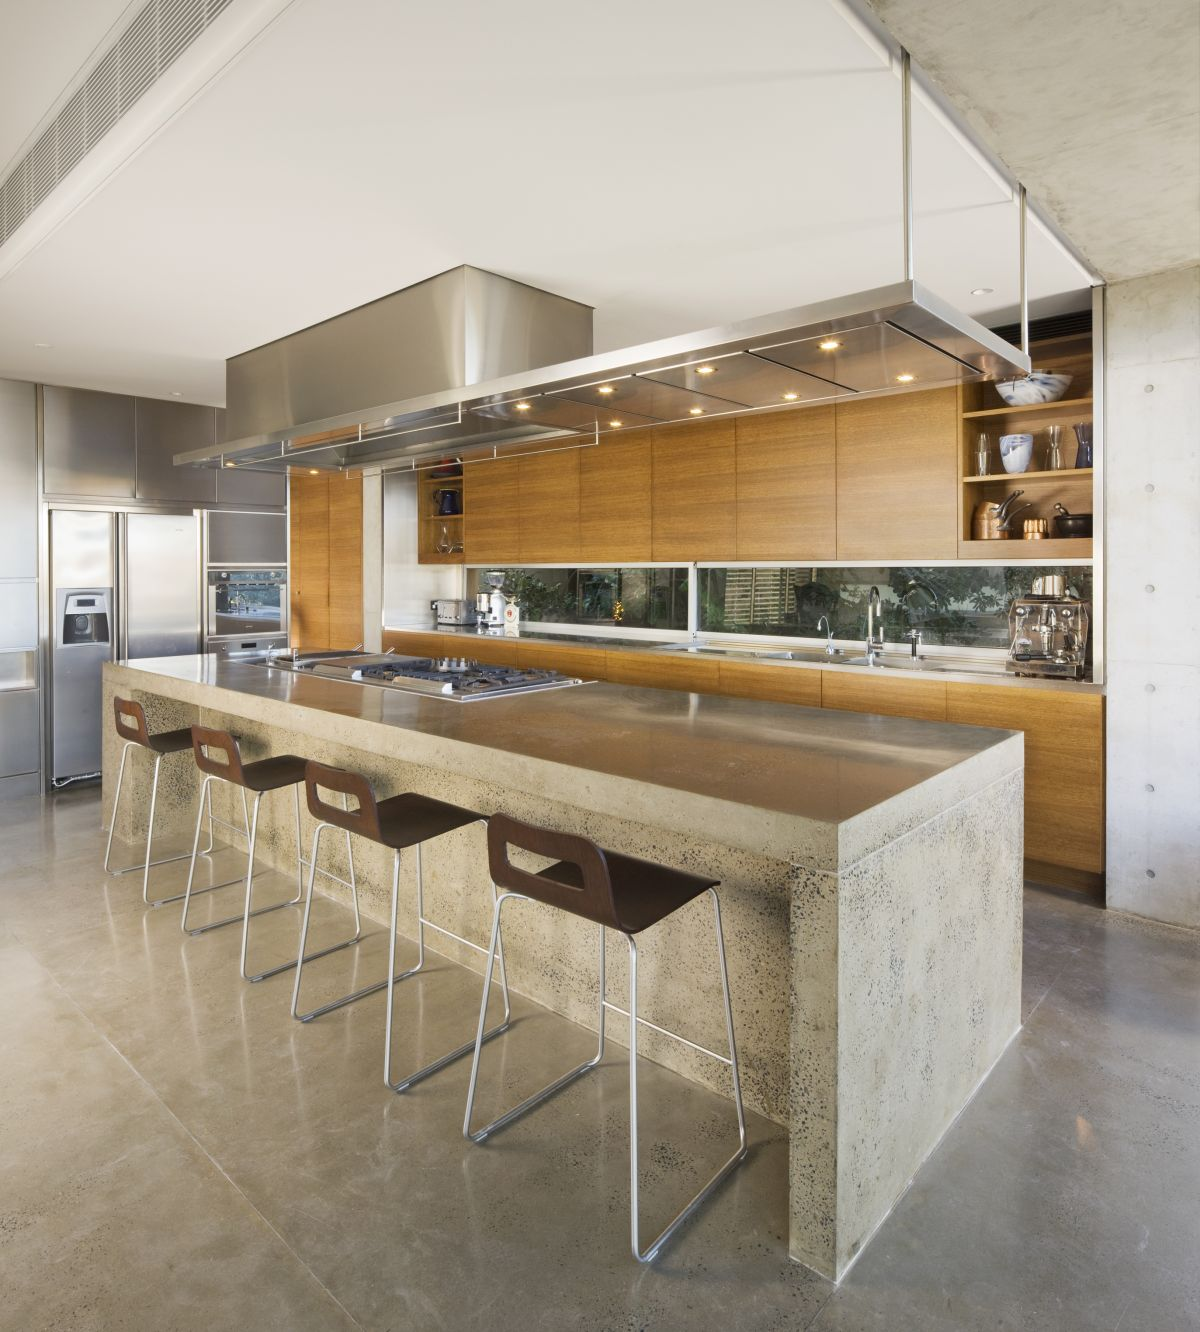 Pictures Of Modern Kitchen: Simply Inspiring 10 Wonderful Kitchen Design Lines That Will Mesmerize You